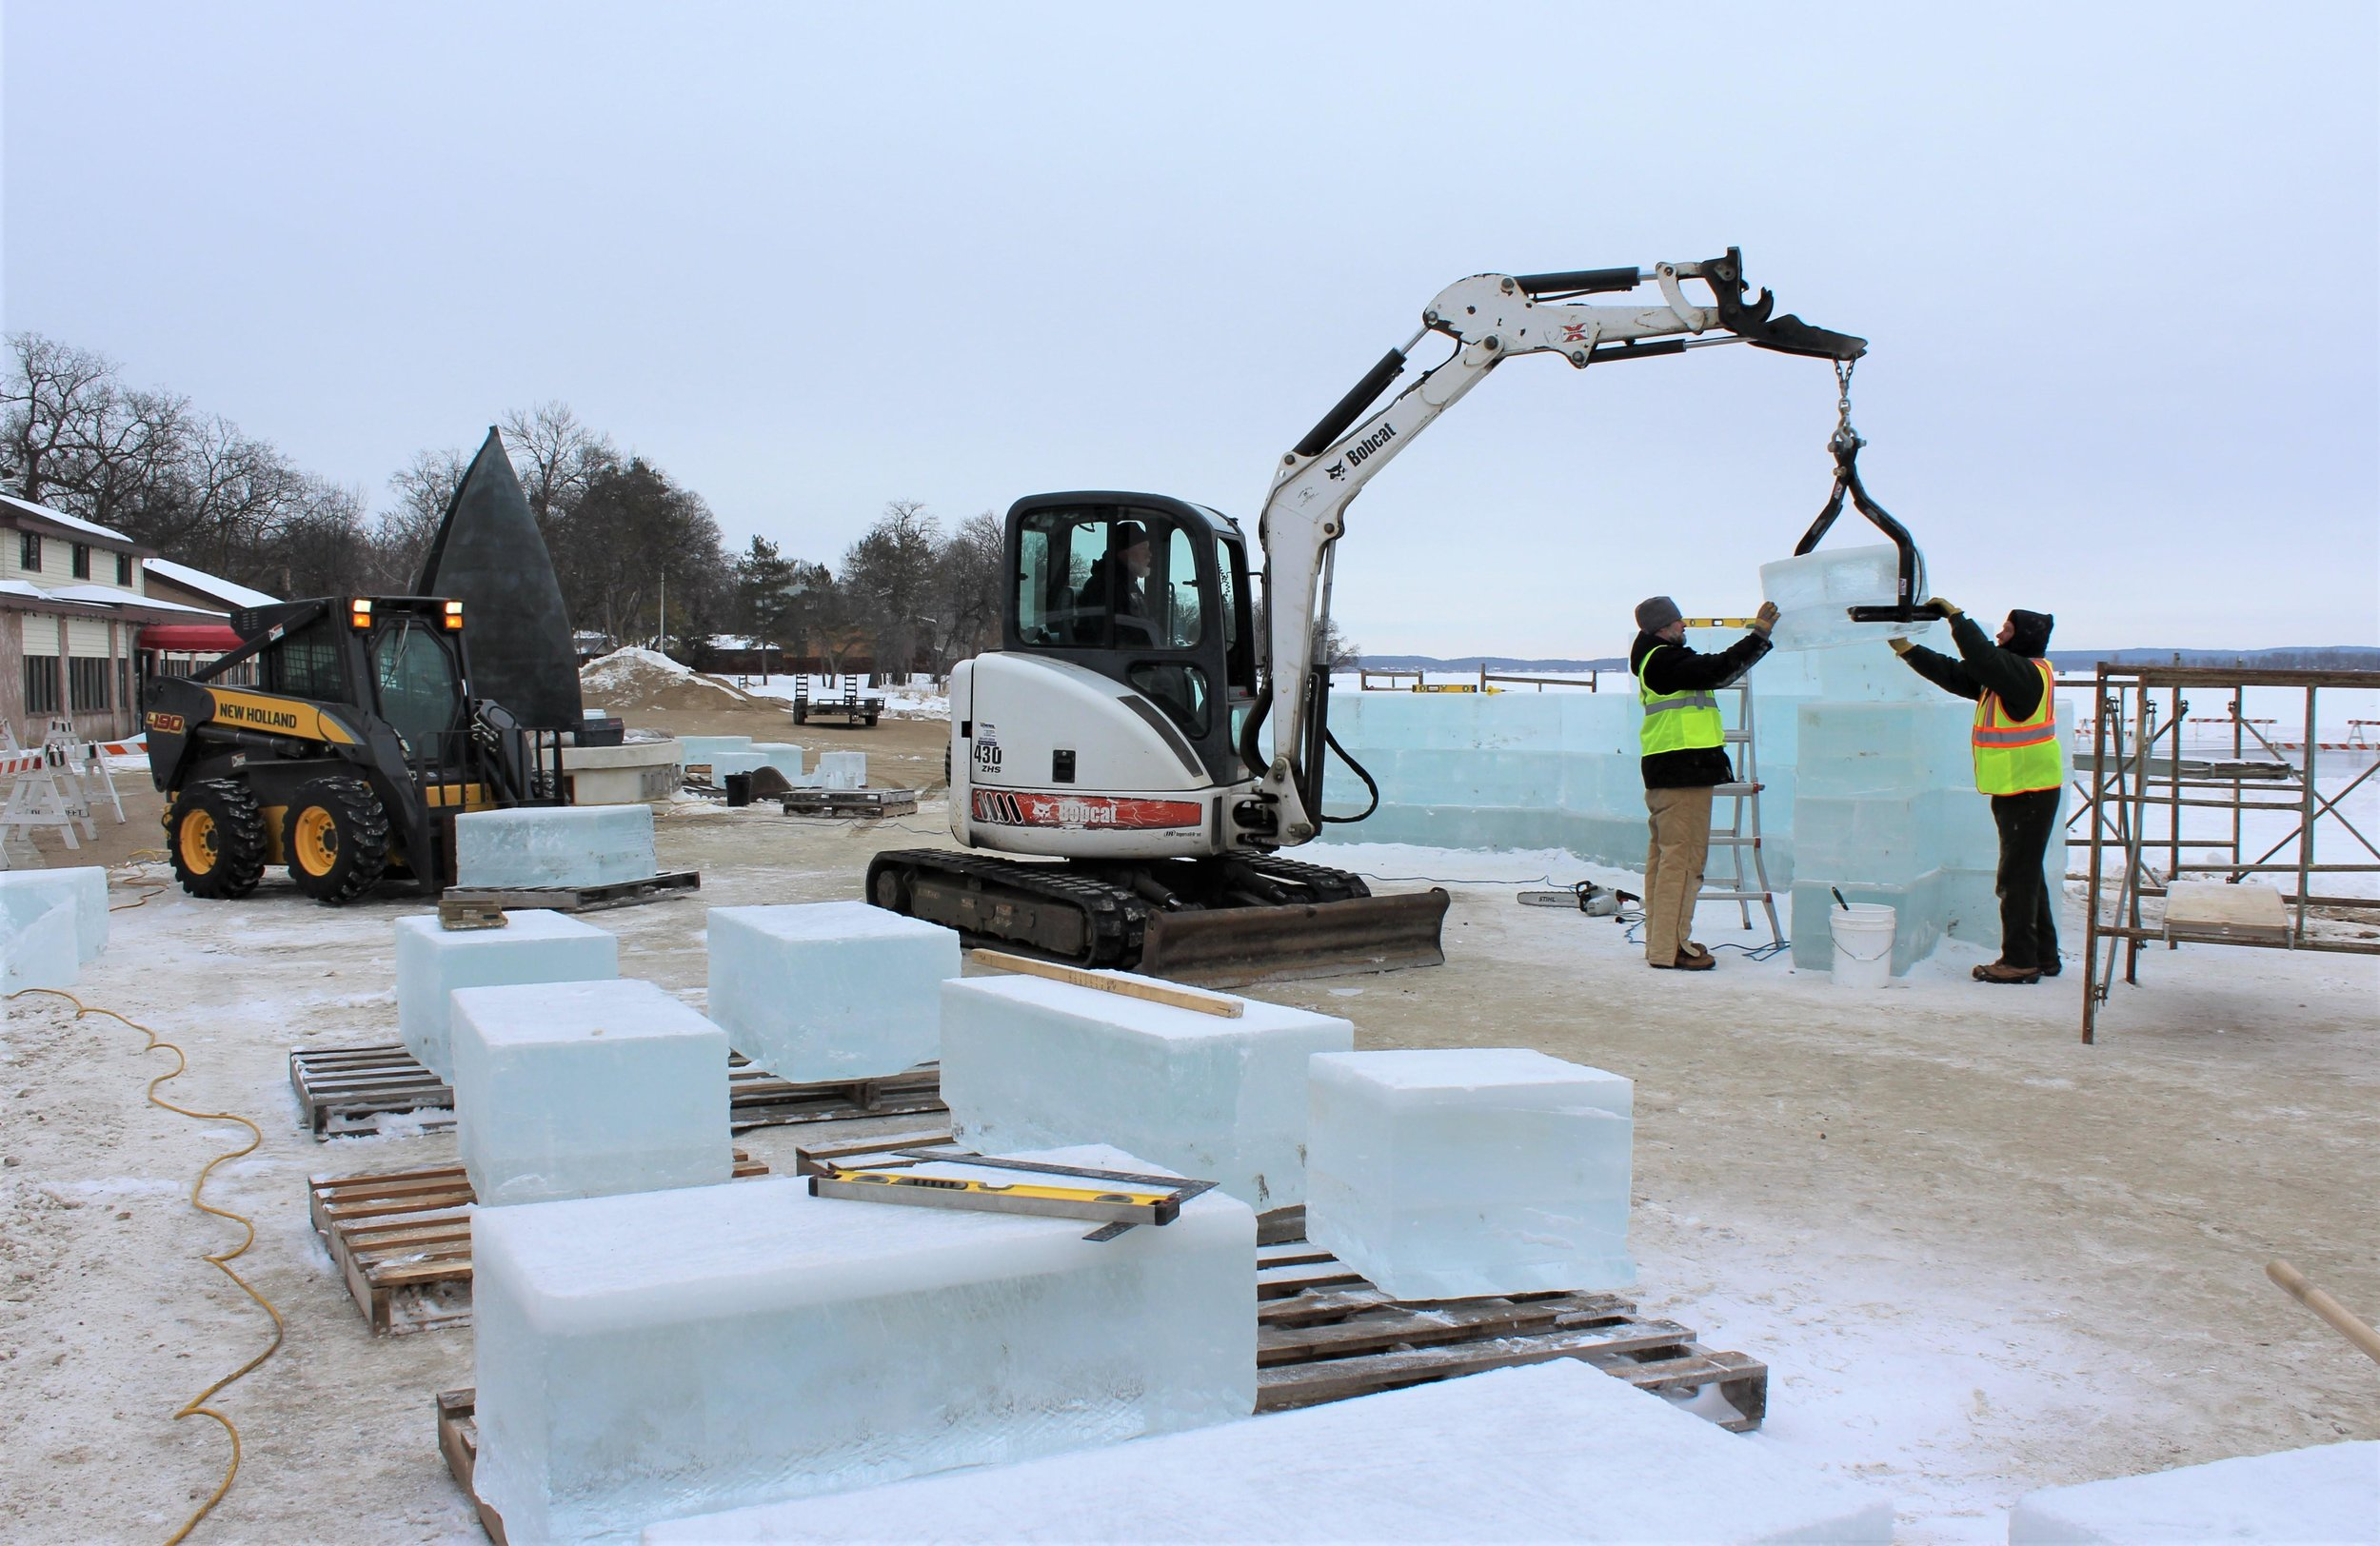 Volunteers on Wednesday stacked 600-pound blocks of ice on the City Beach near the Pavilion. Over the next three weeks, the blocks will be crafted into a decorative wall and throne structure as part of King Isbit's Royal Courtyard and Palatial Playground -- a highlight of this year's Polar Fest. (Marie Johnson / Tribune)